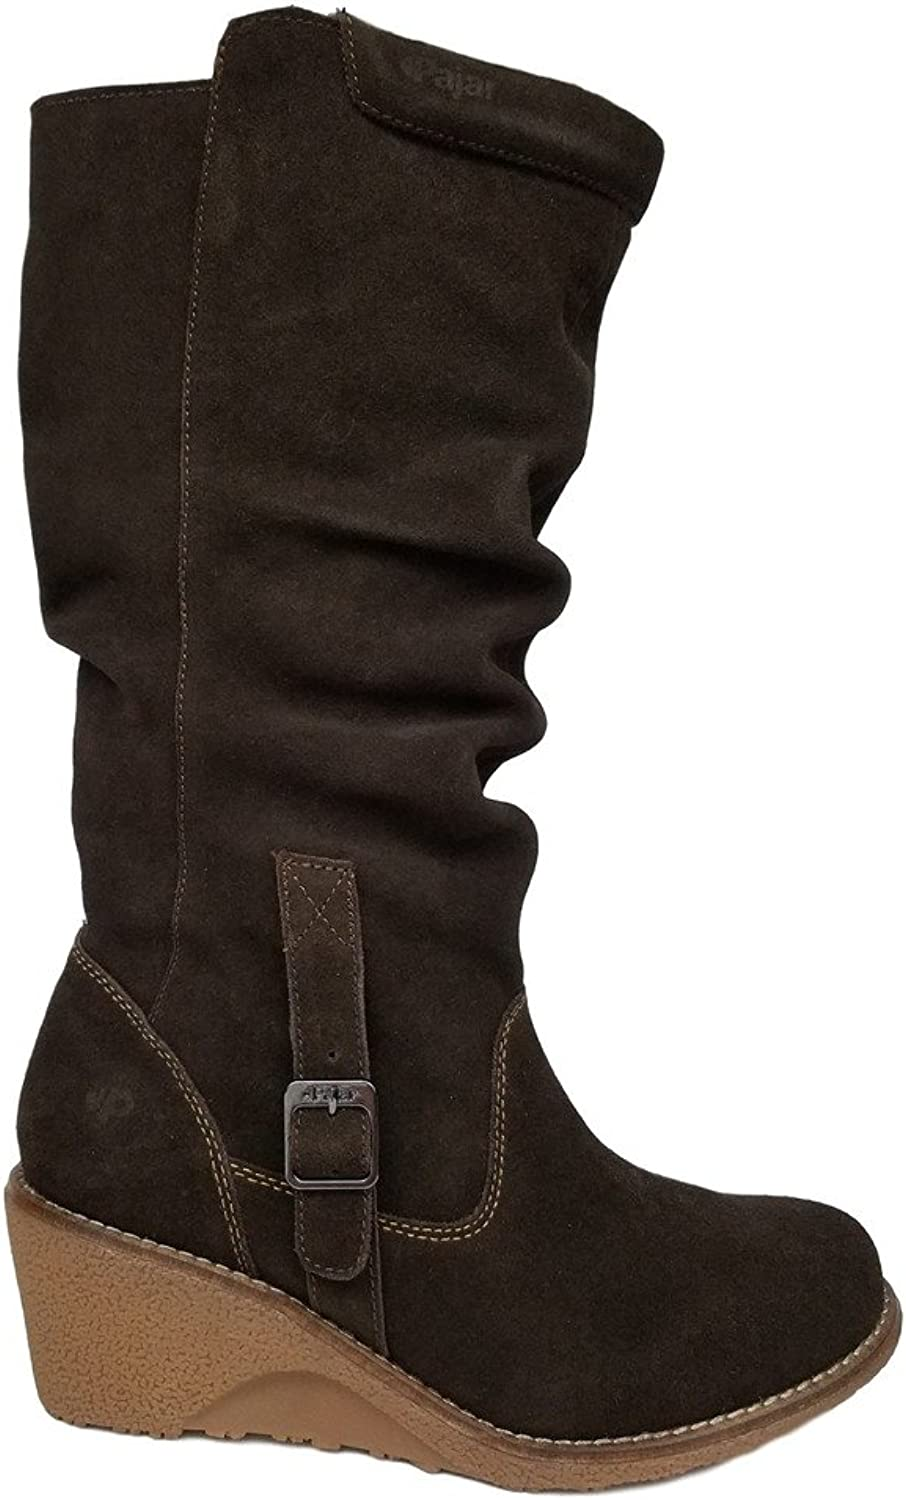 Pajar Women's Valerie Leather Winter Water-Resistant Boo